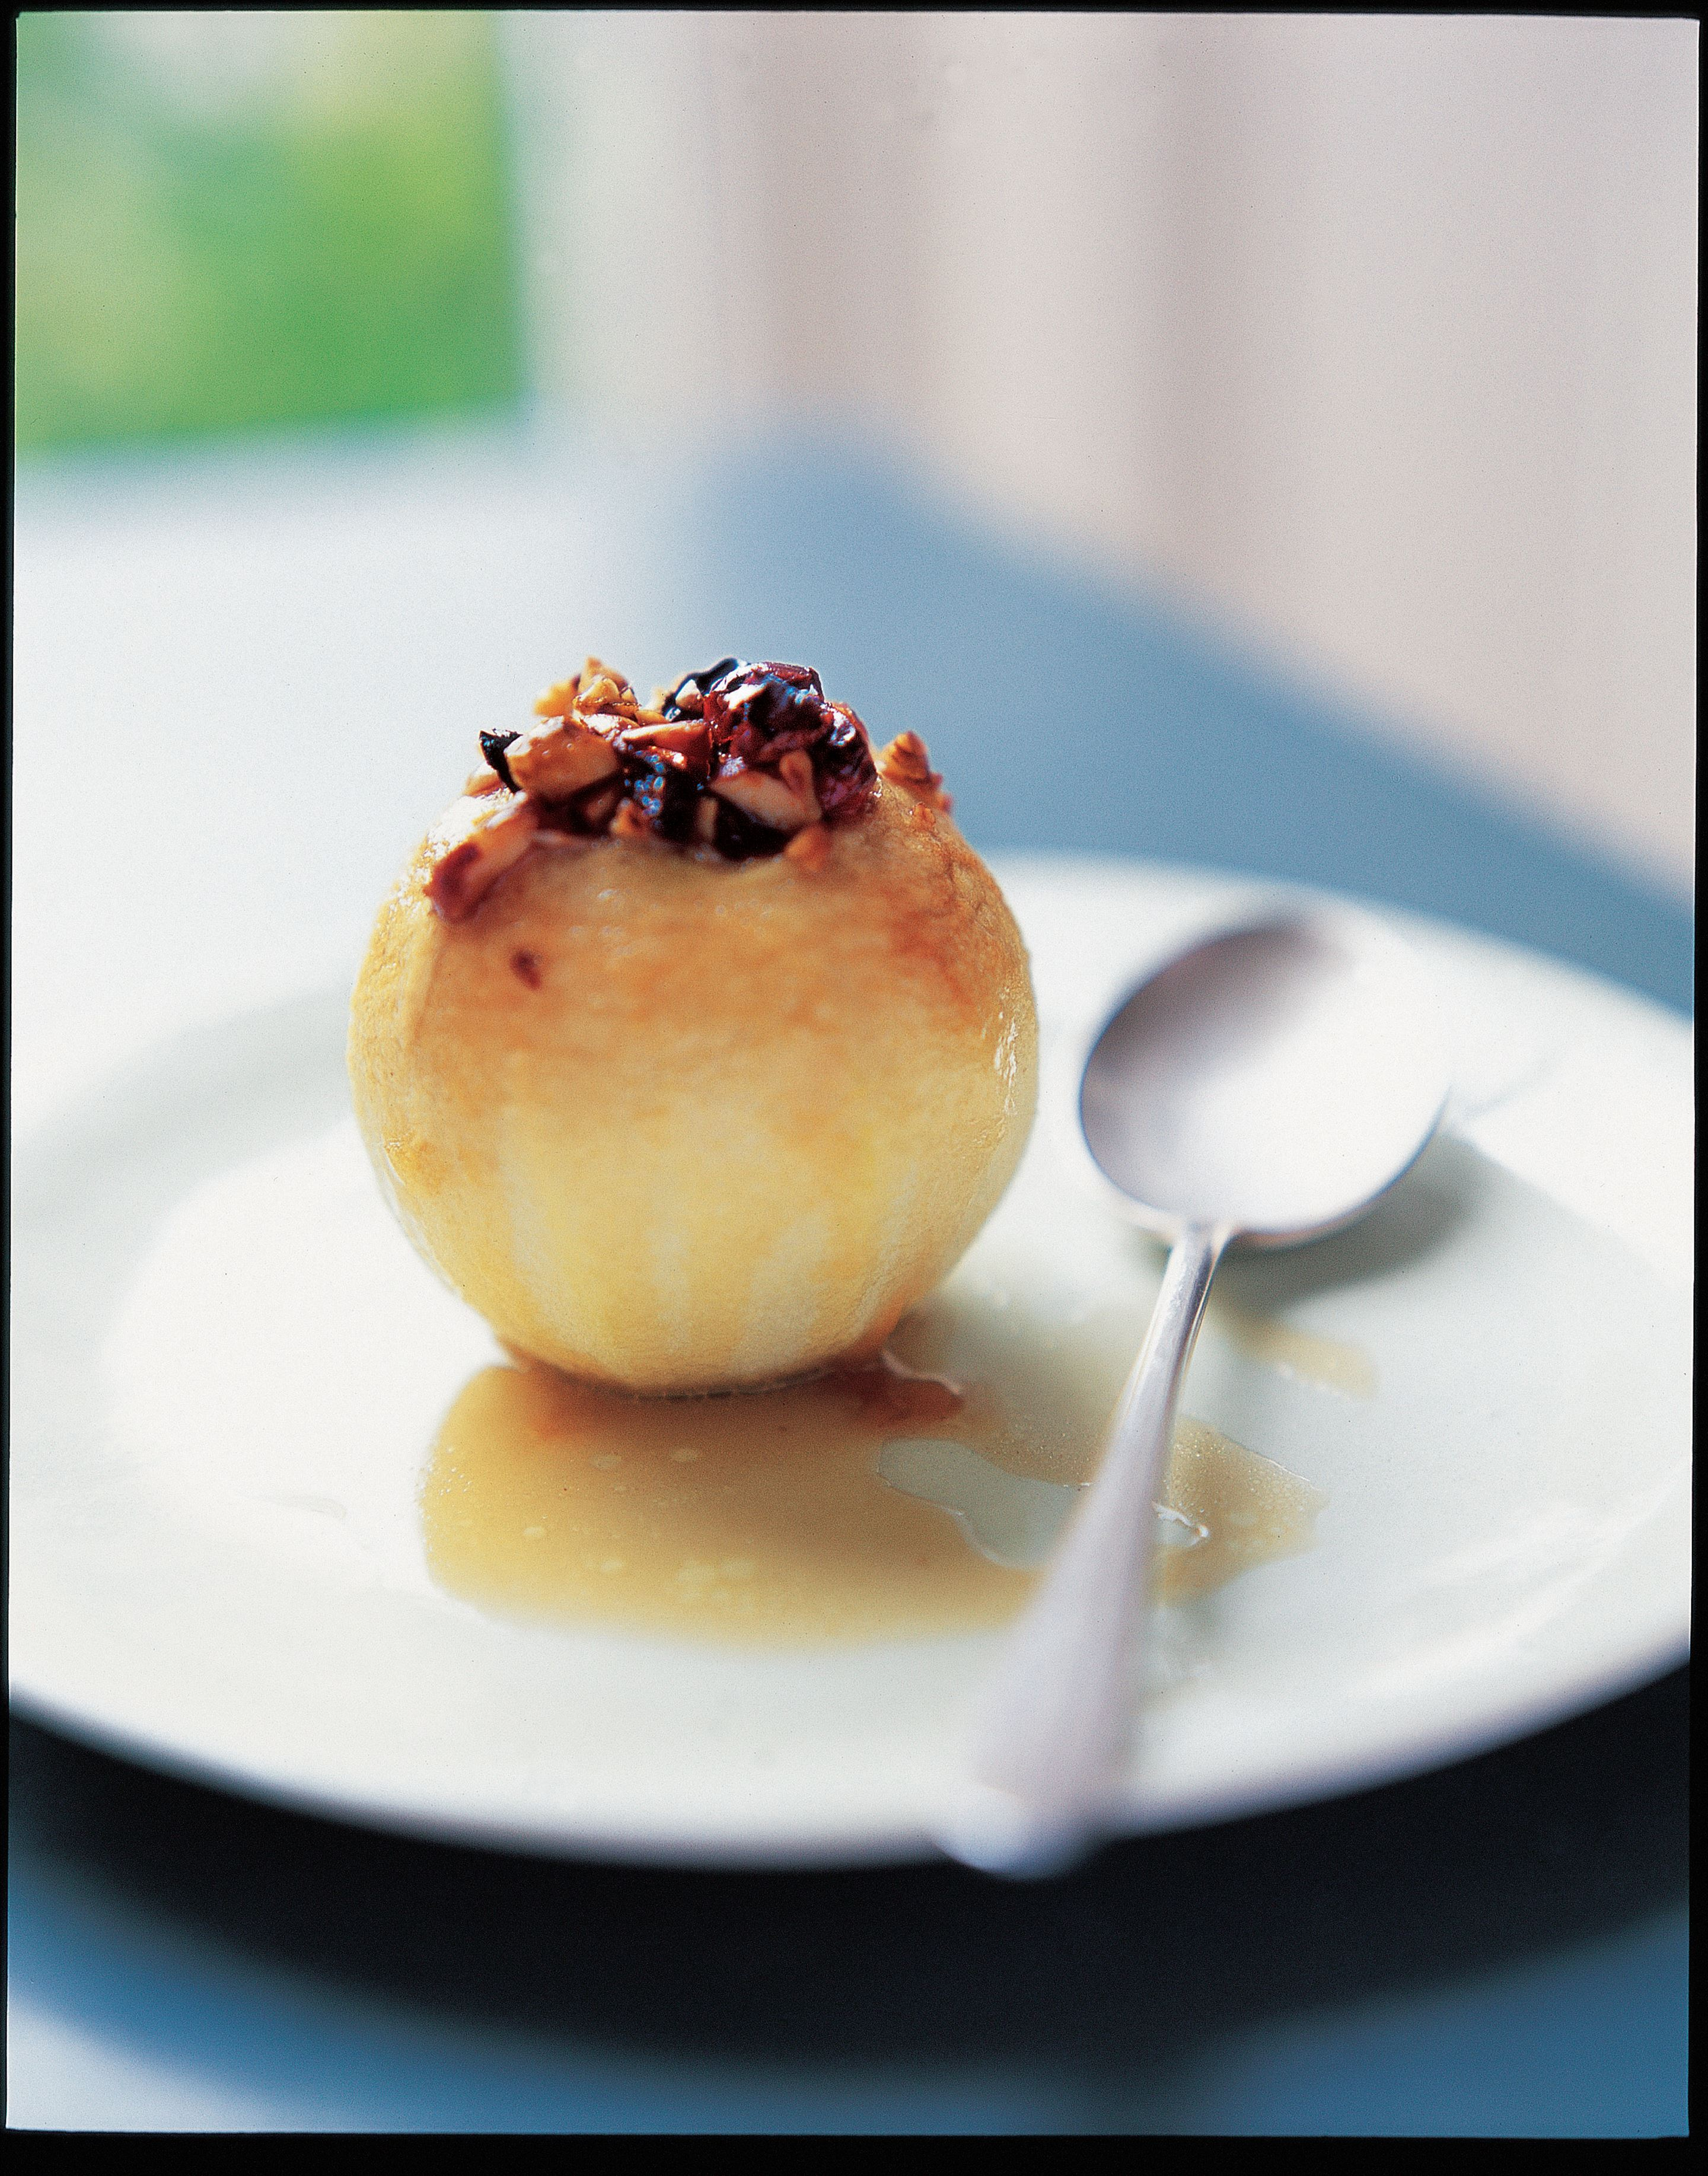 Baked spice-stuffed apples